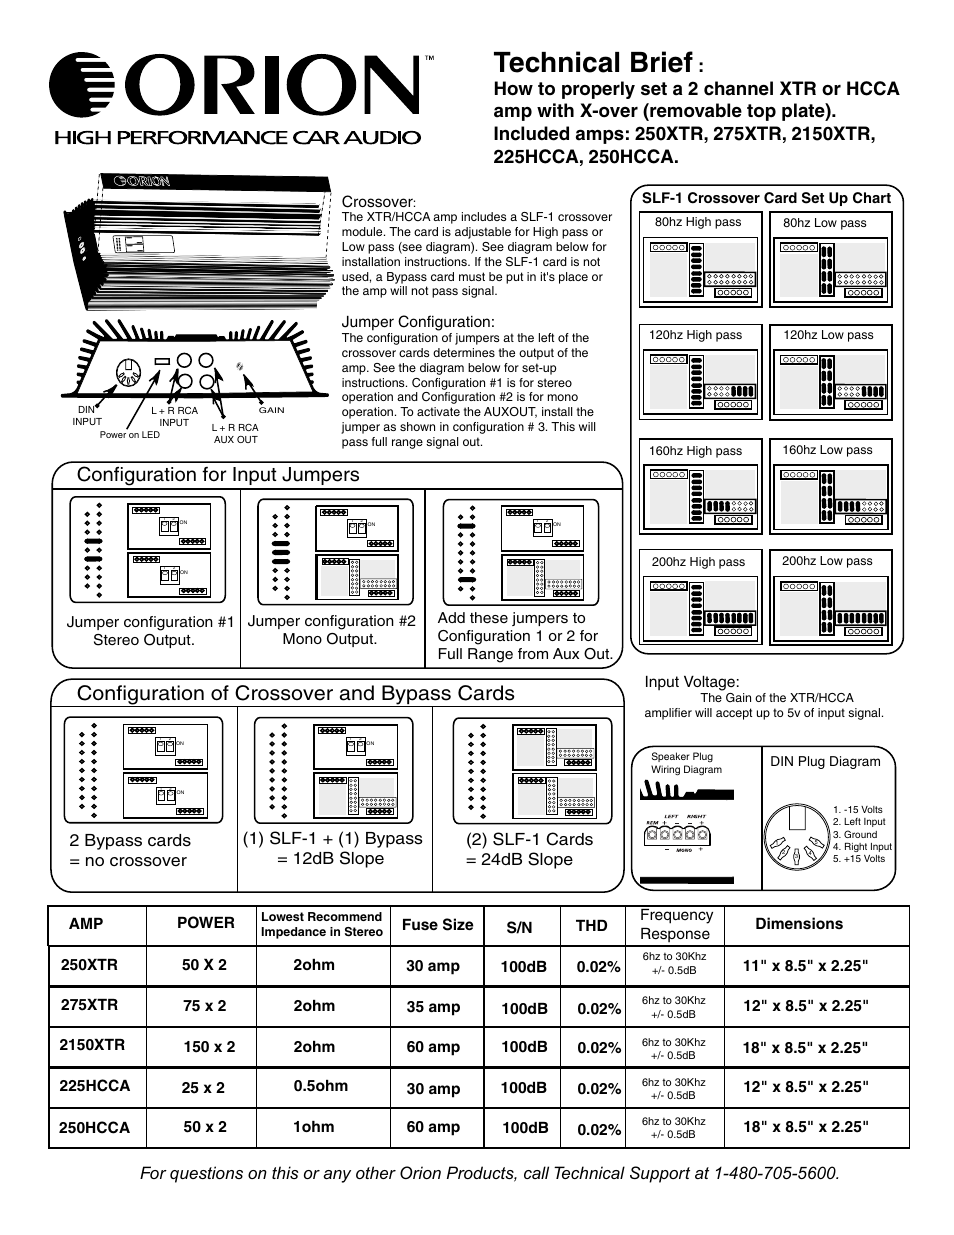 orion car audio 250xtr page1 orion car audio 250xtr user manual 1 page also for 225hcca orion 250 hcca wiring diagram at bakdesigns.co